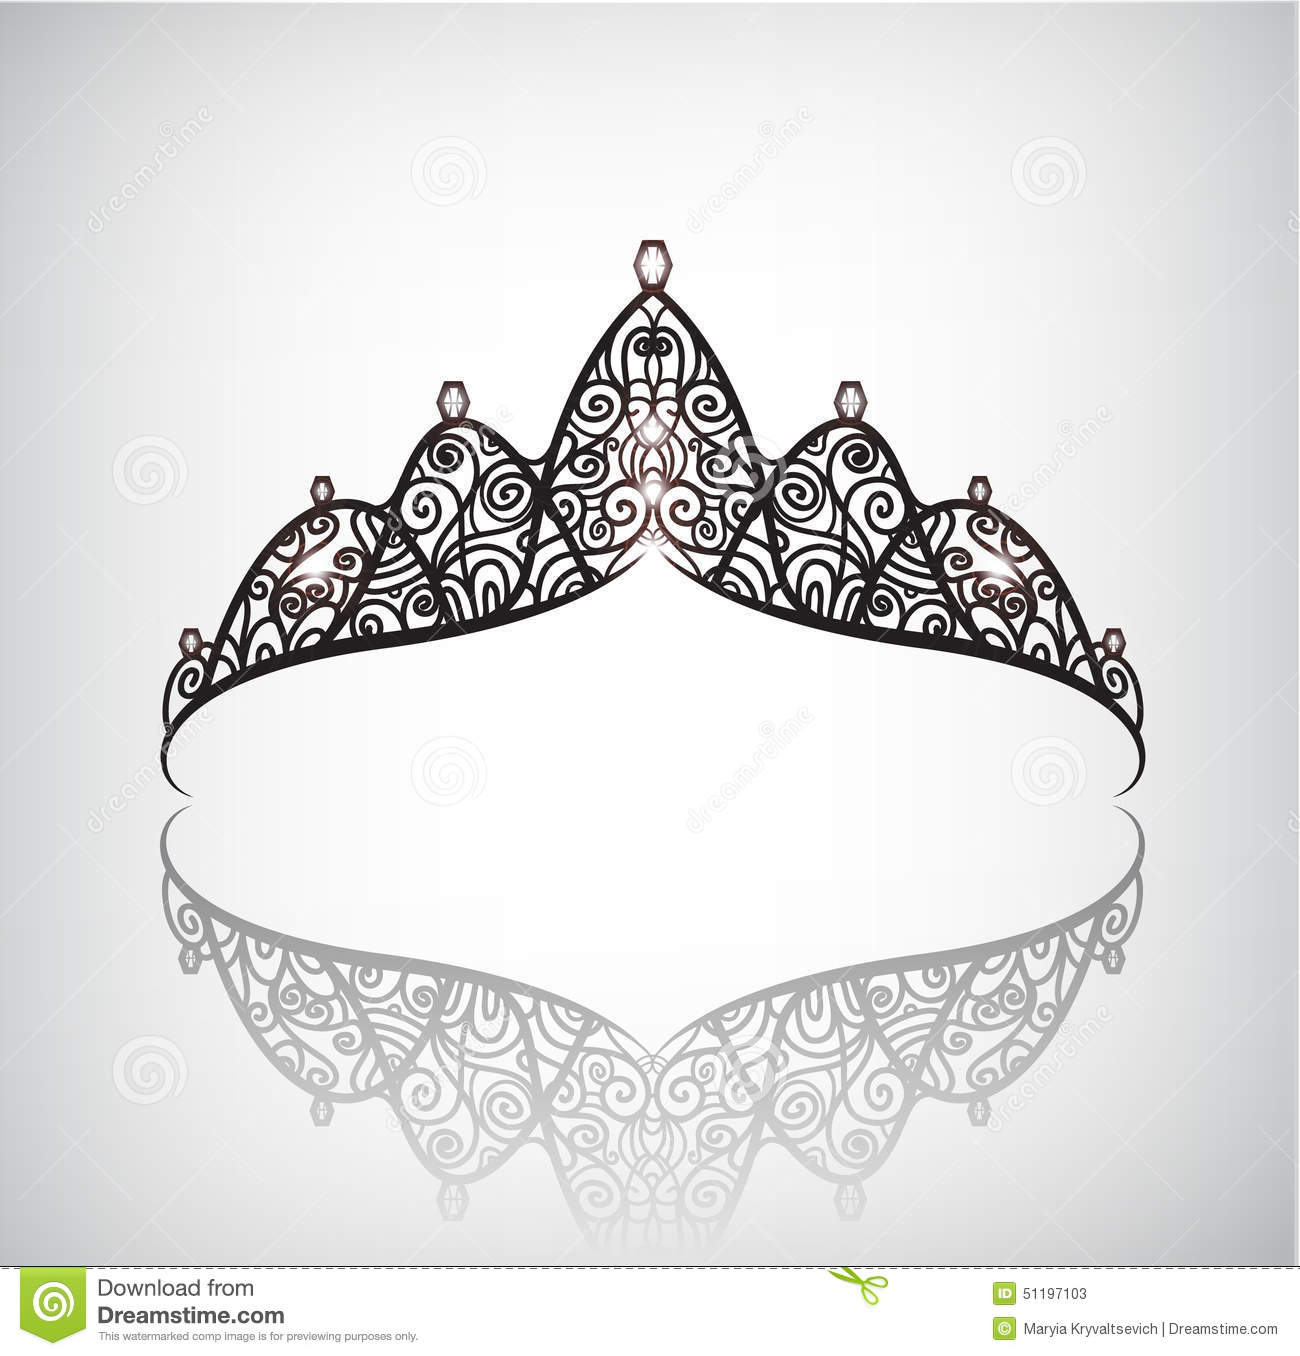 Elegant Vector Crown Or Tiara Cartoon Vector